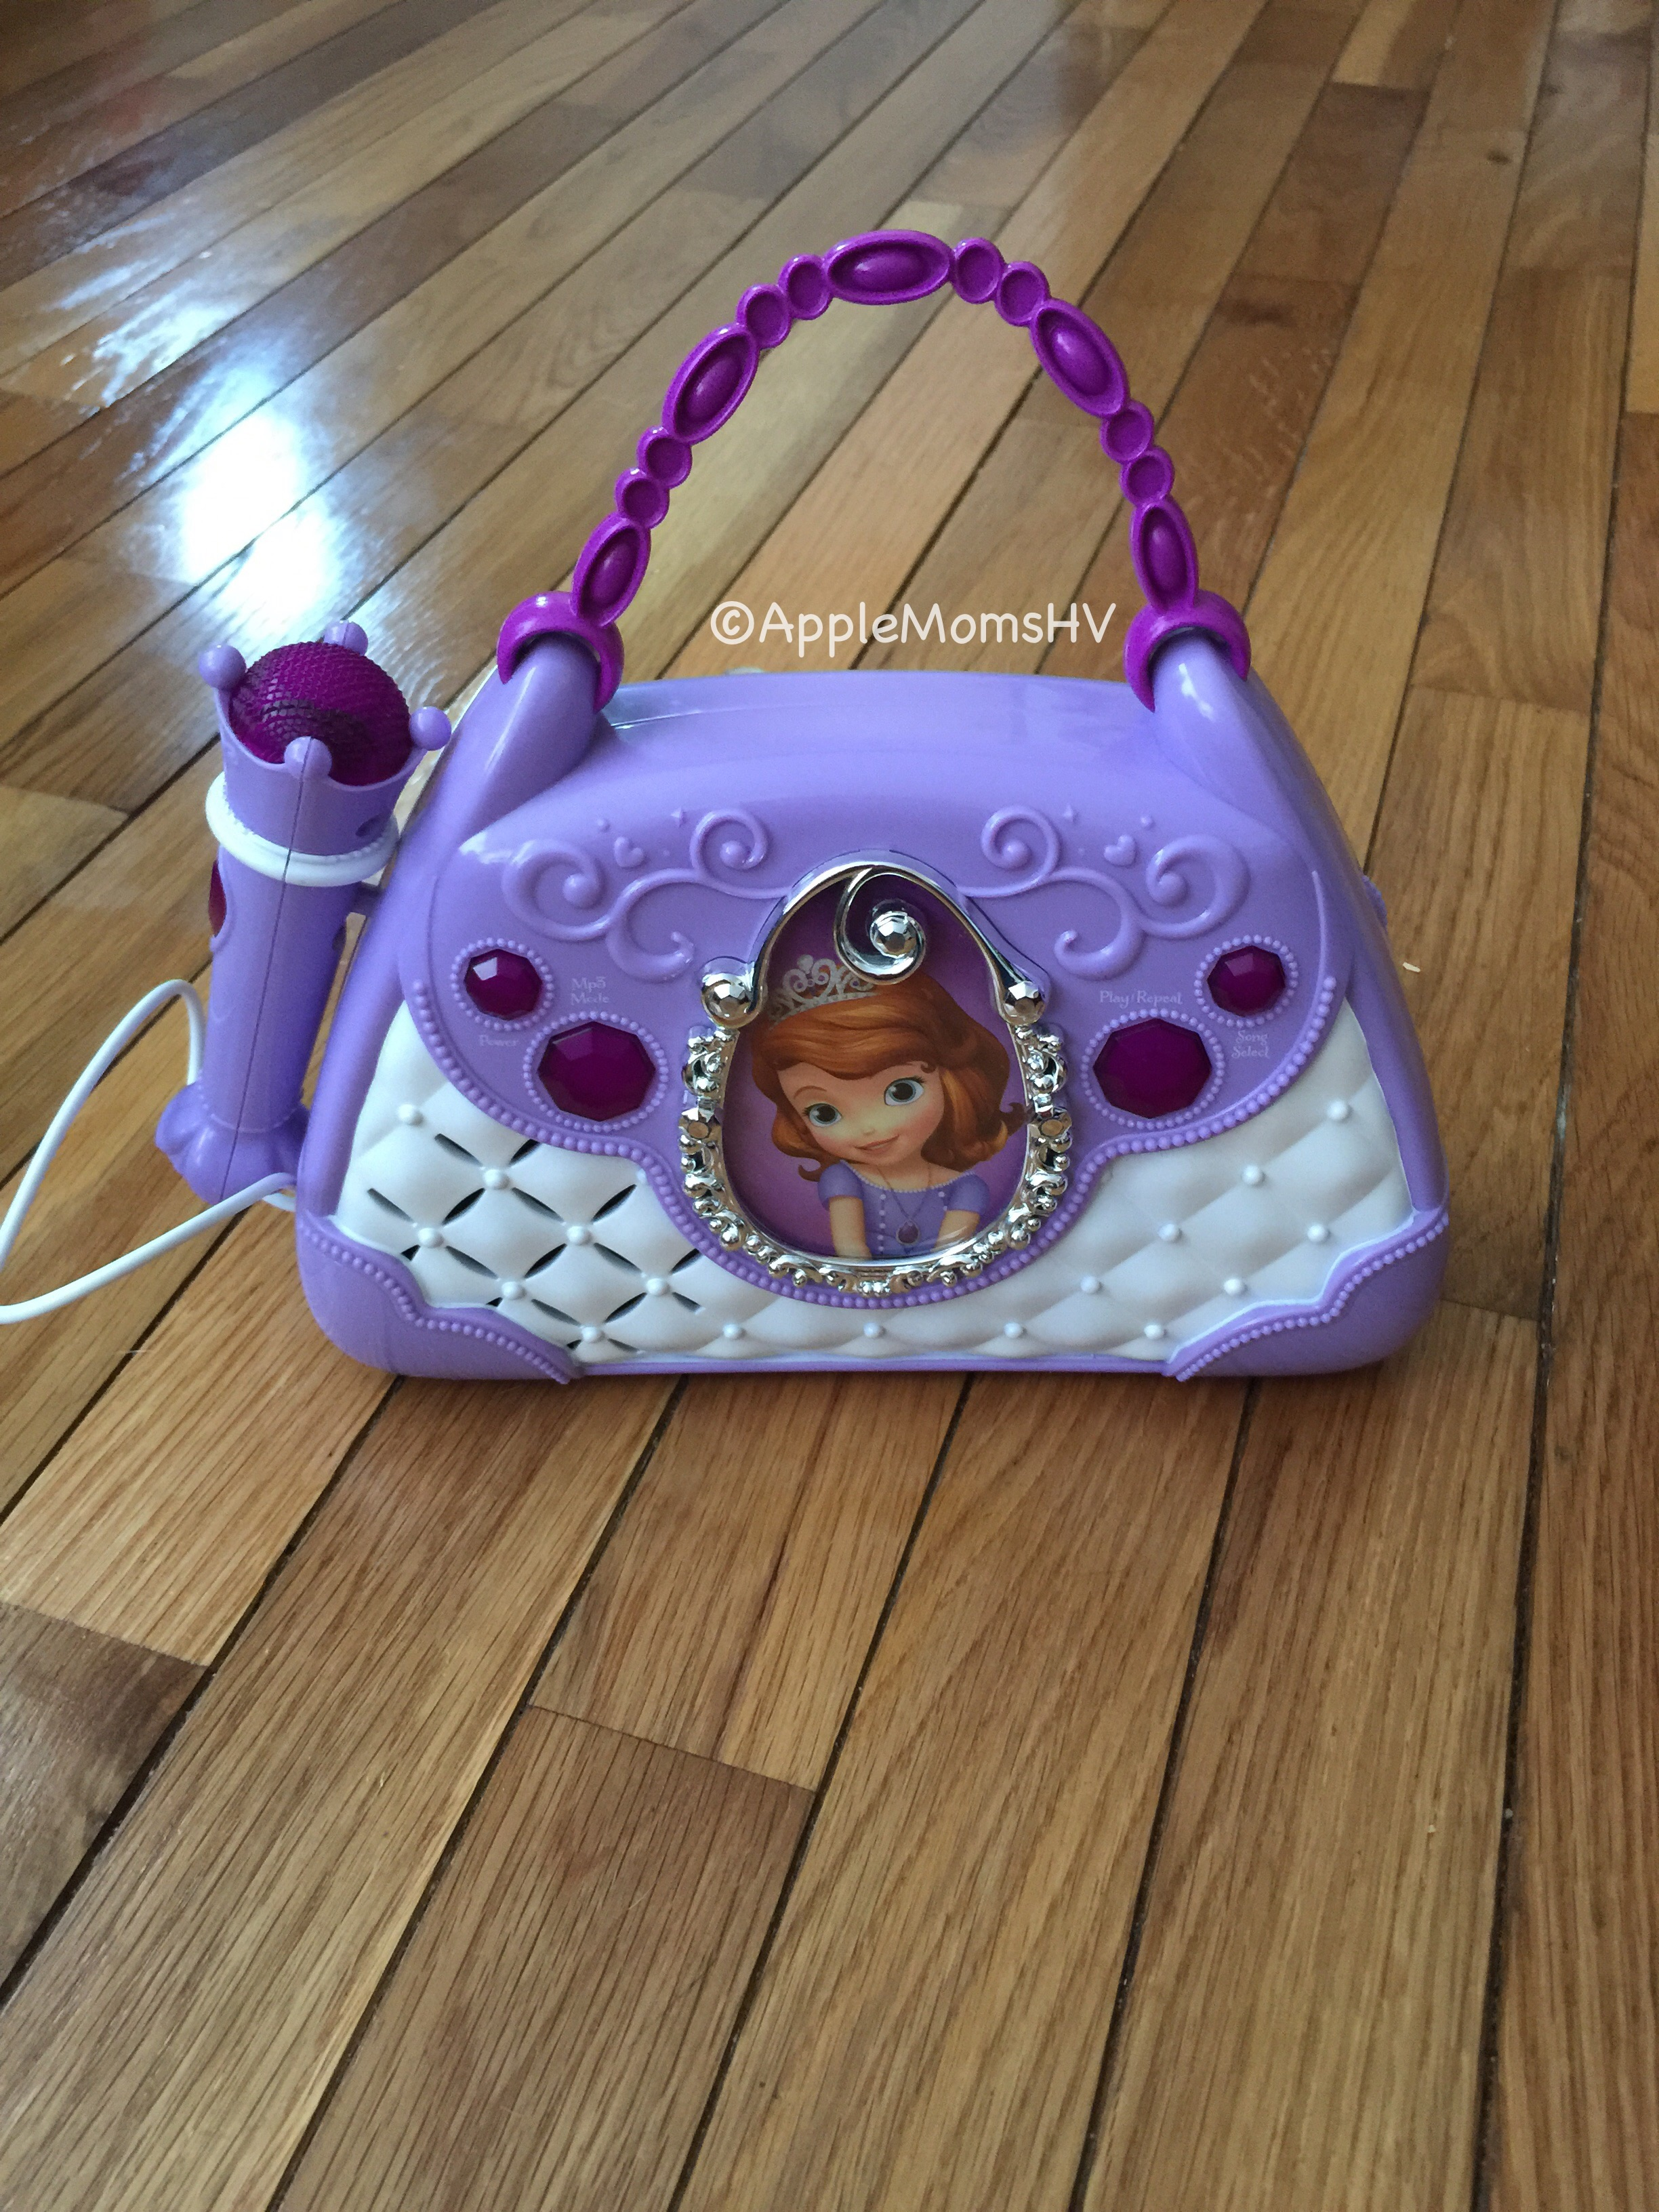 REVIEW: Sofia the First Sing-A-Long Boombox